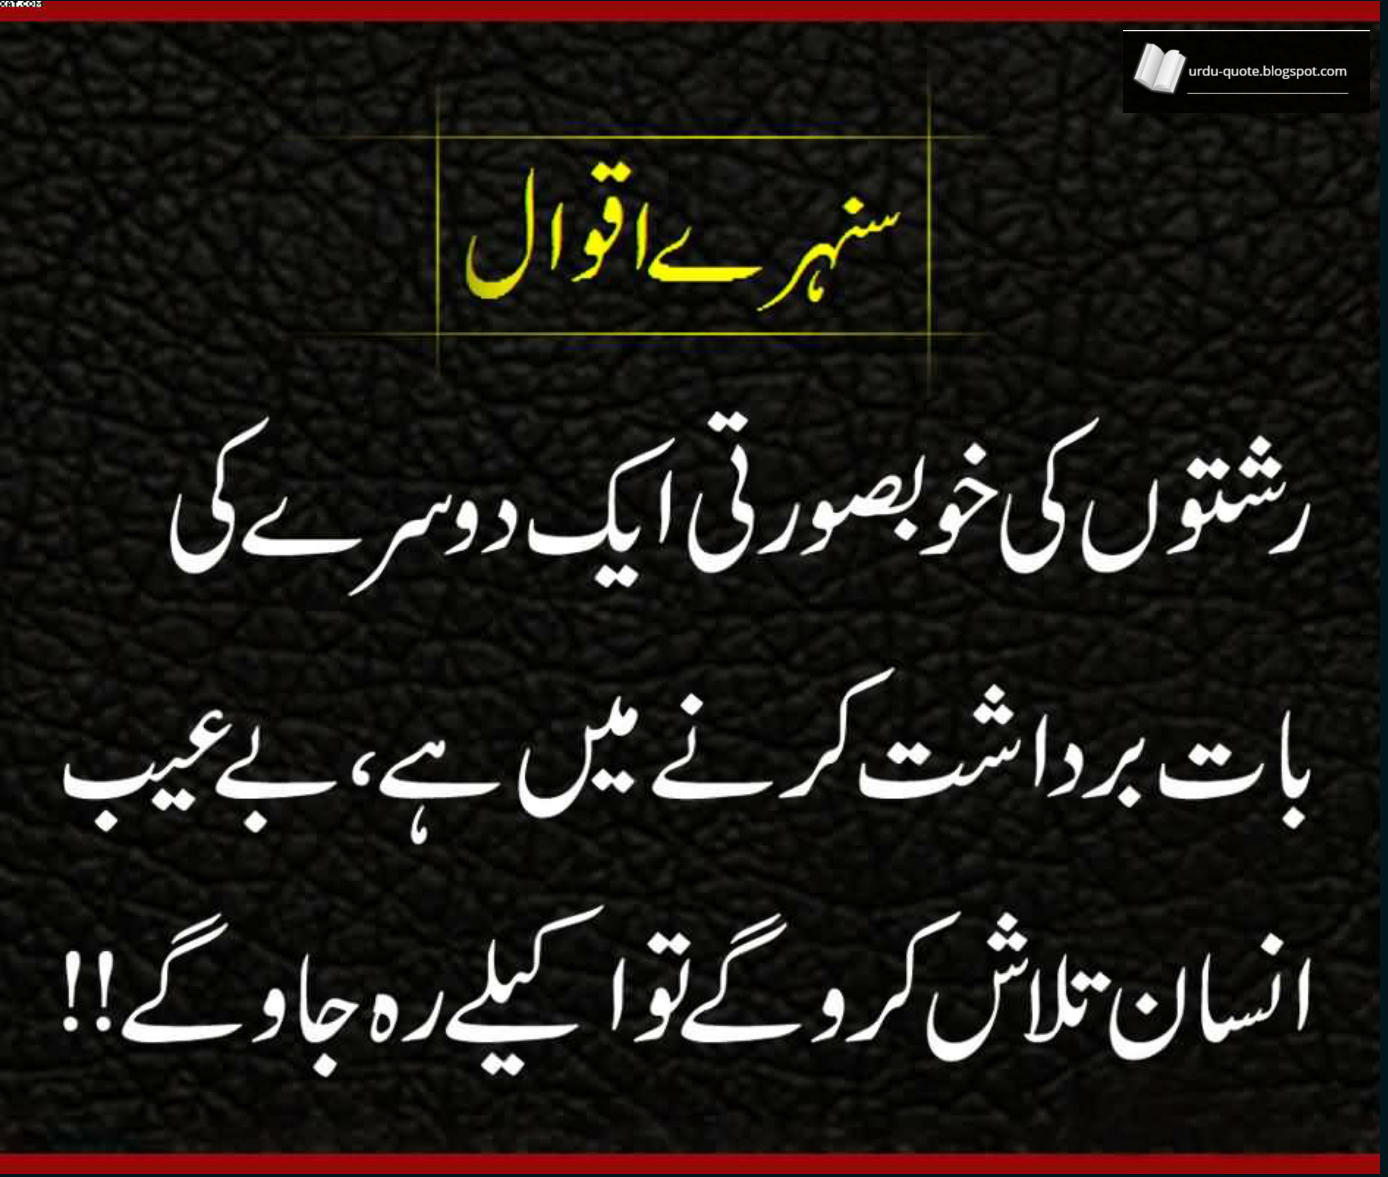 Urdu Quotes Best Urdu Quotes Famous Urdu Quotes 2019